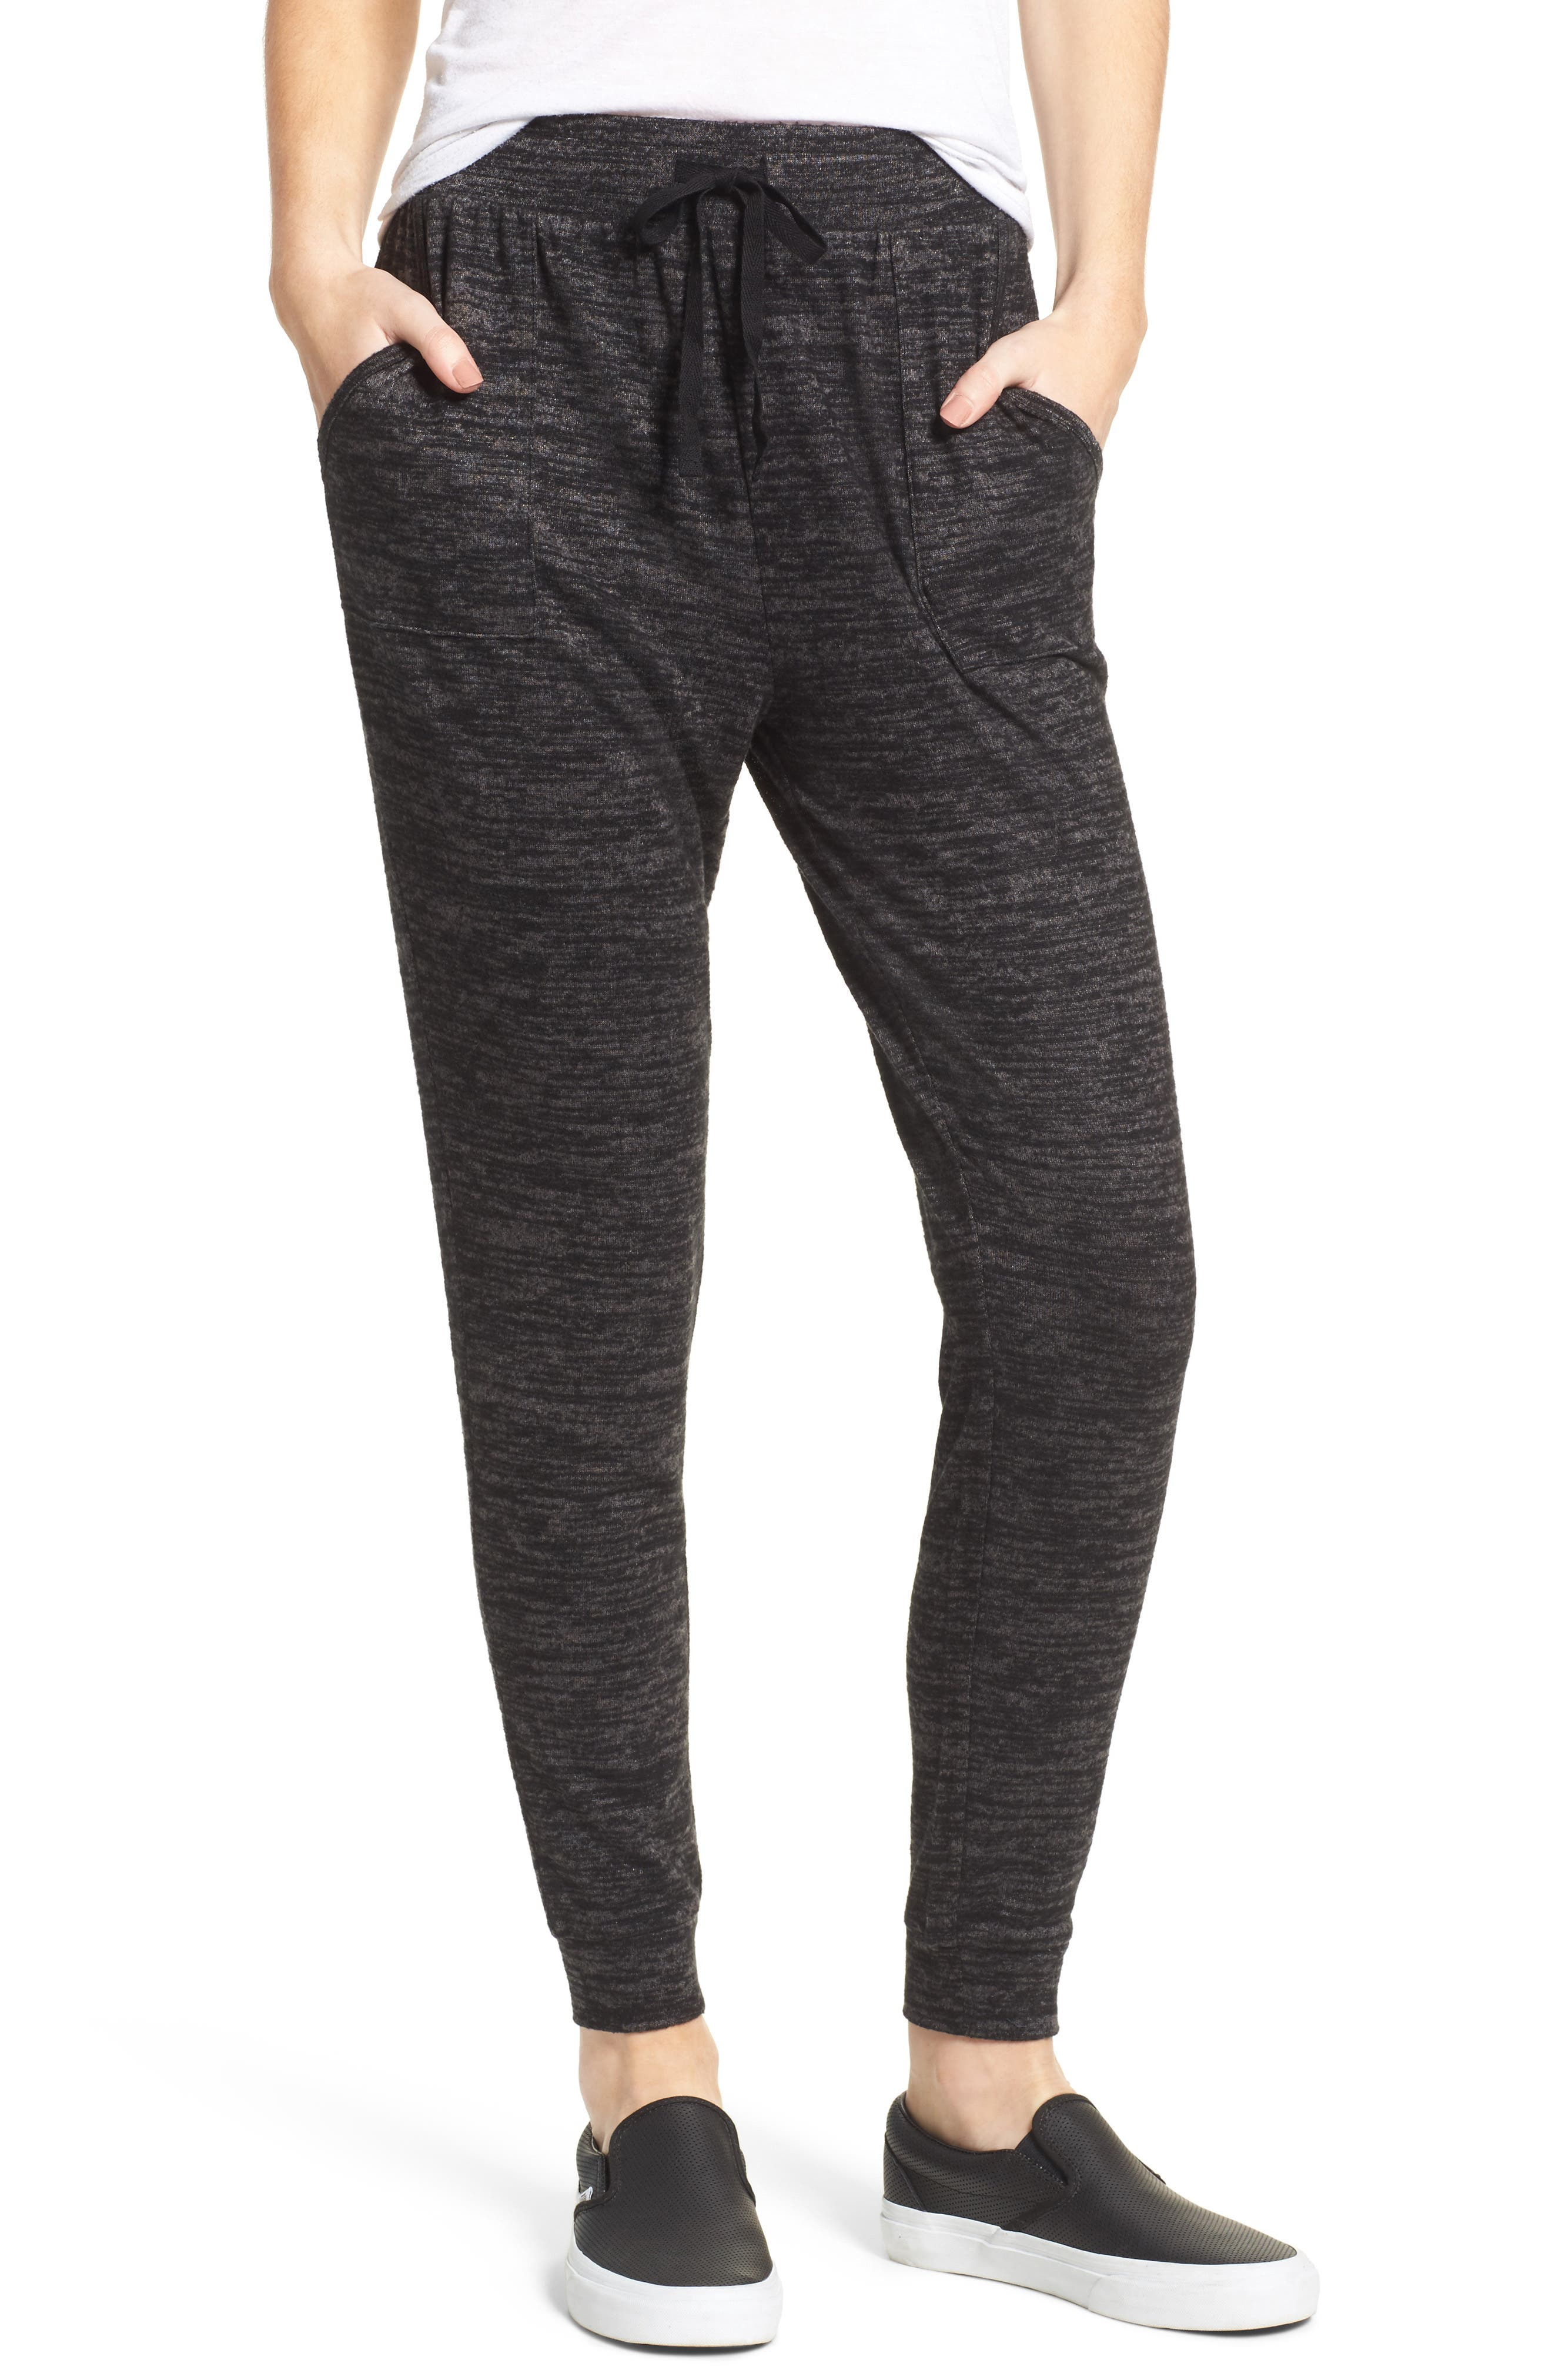 Stretch Knit Joggers,                         Main,                         color, 001